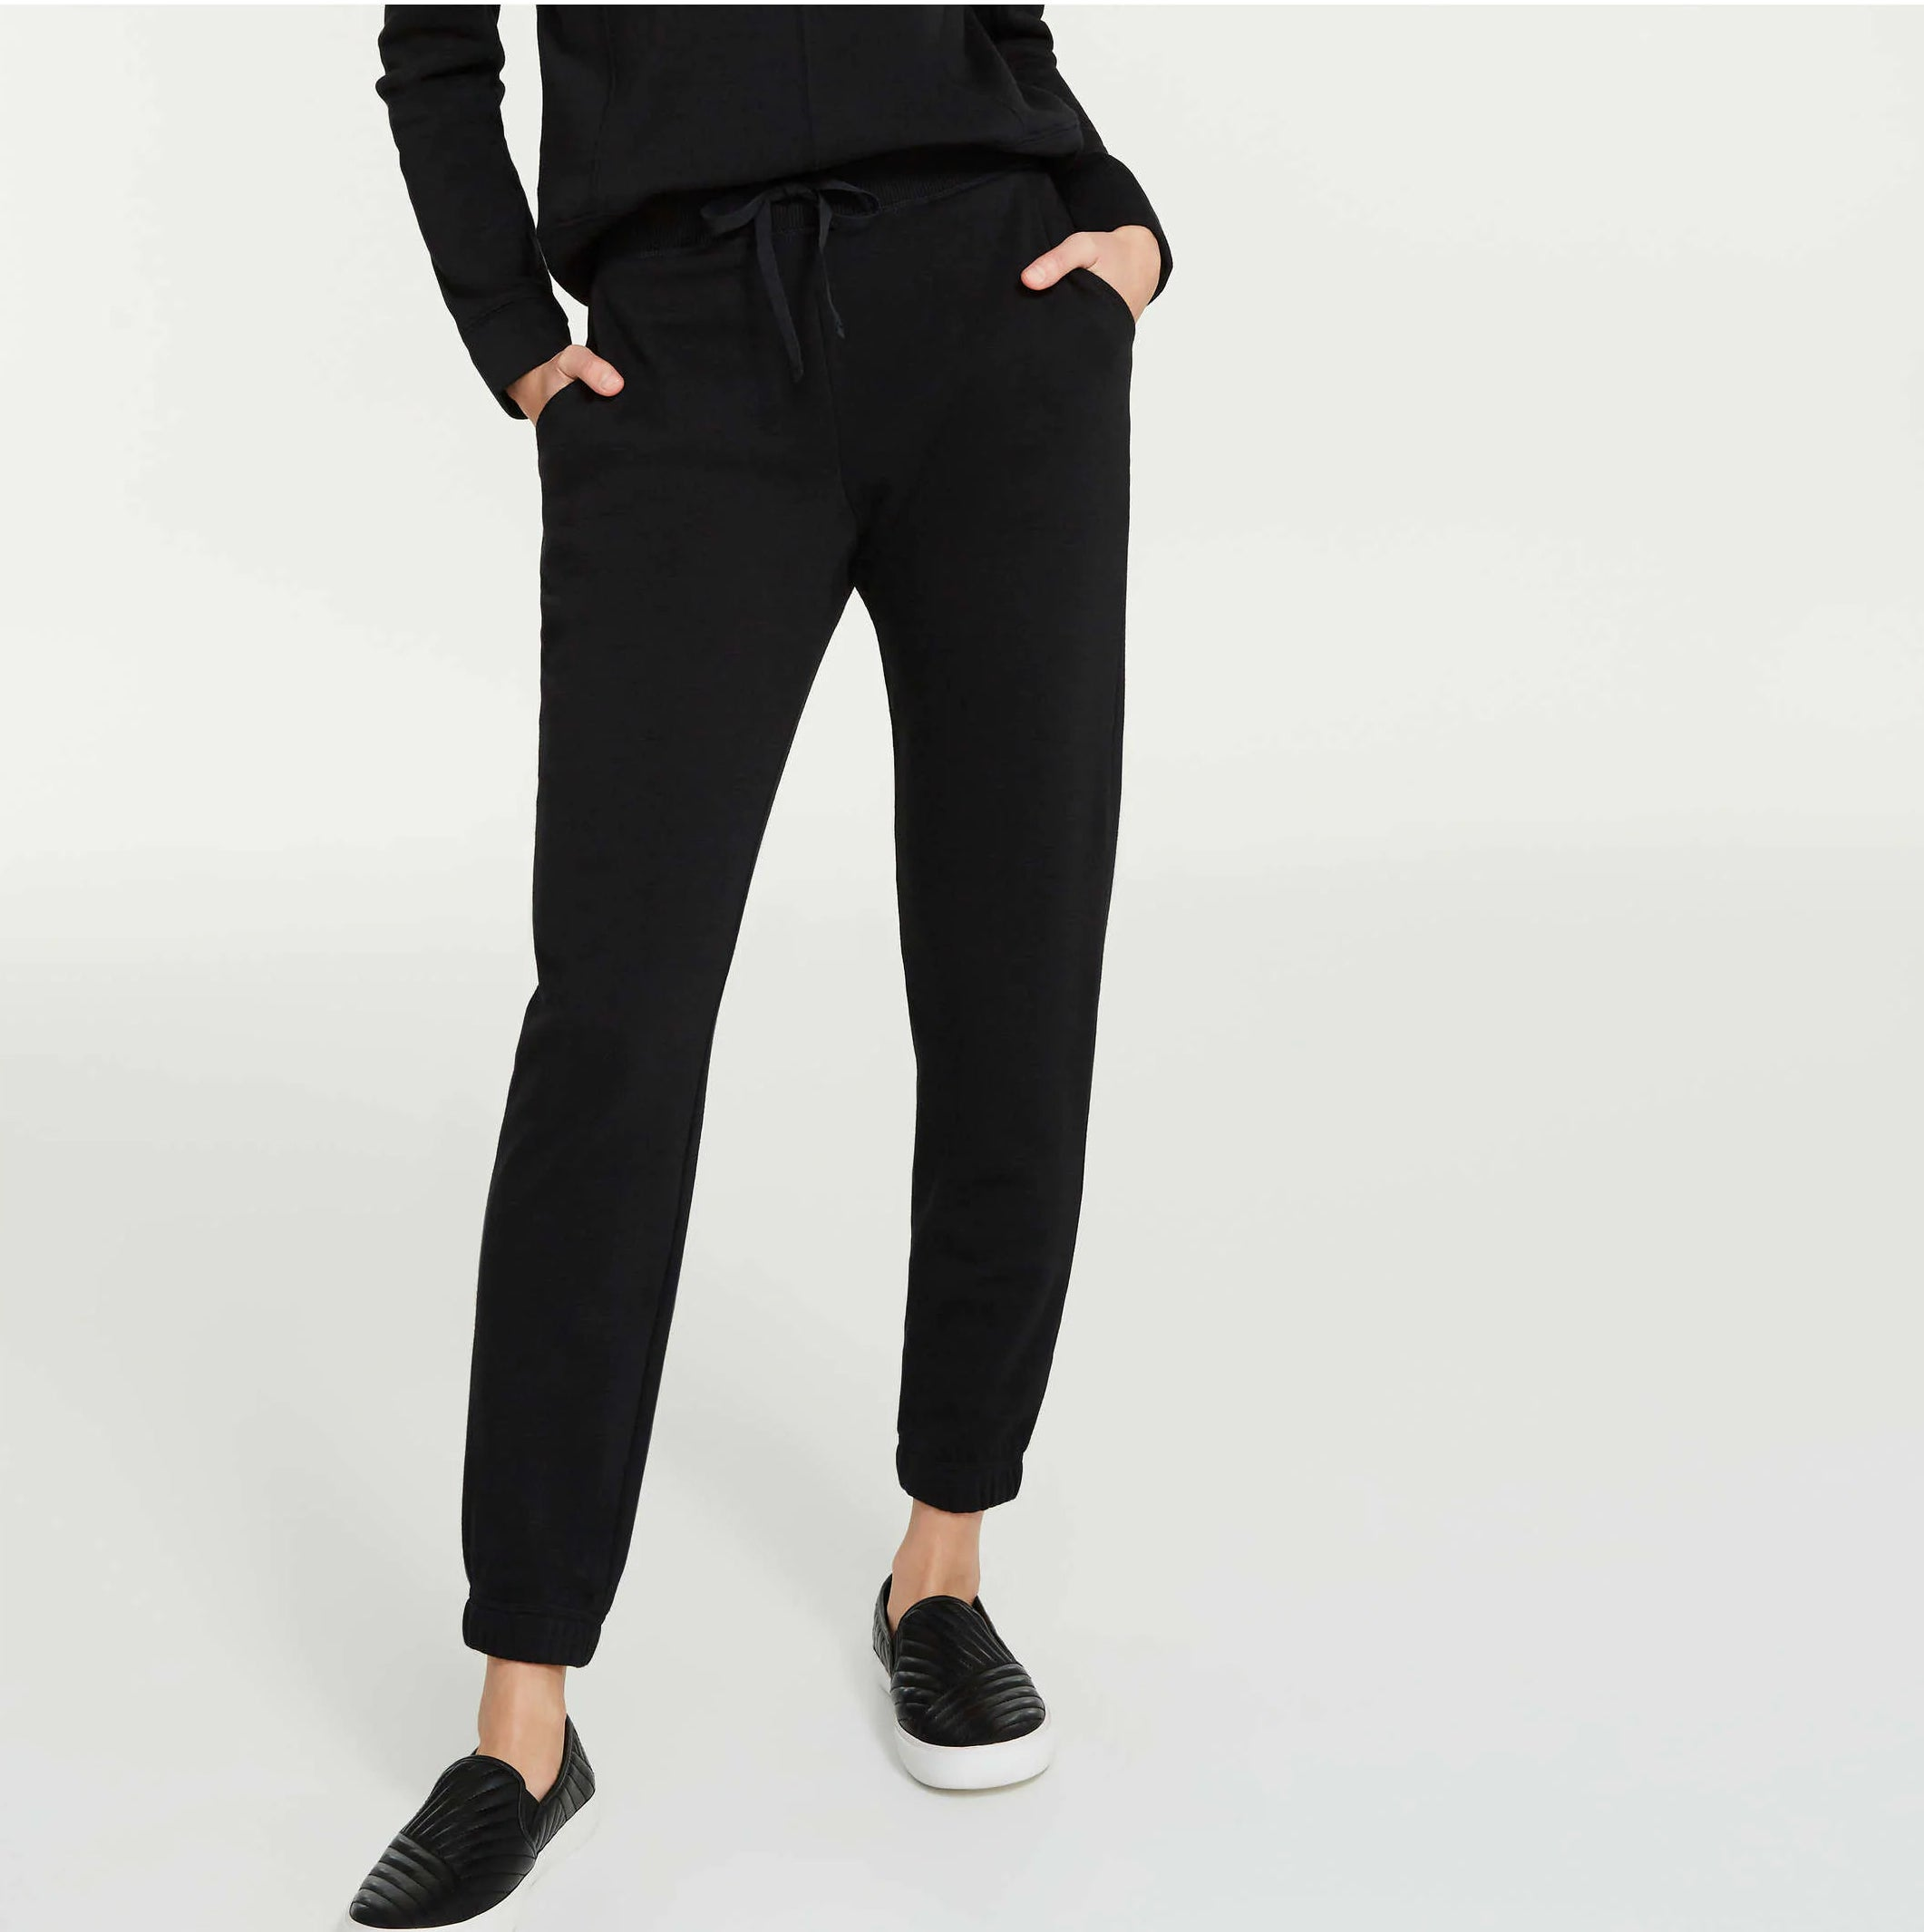 A person wearing jogger pants